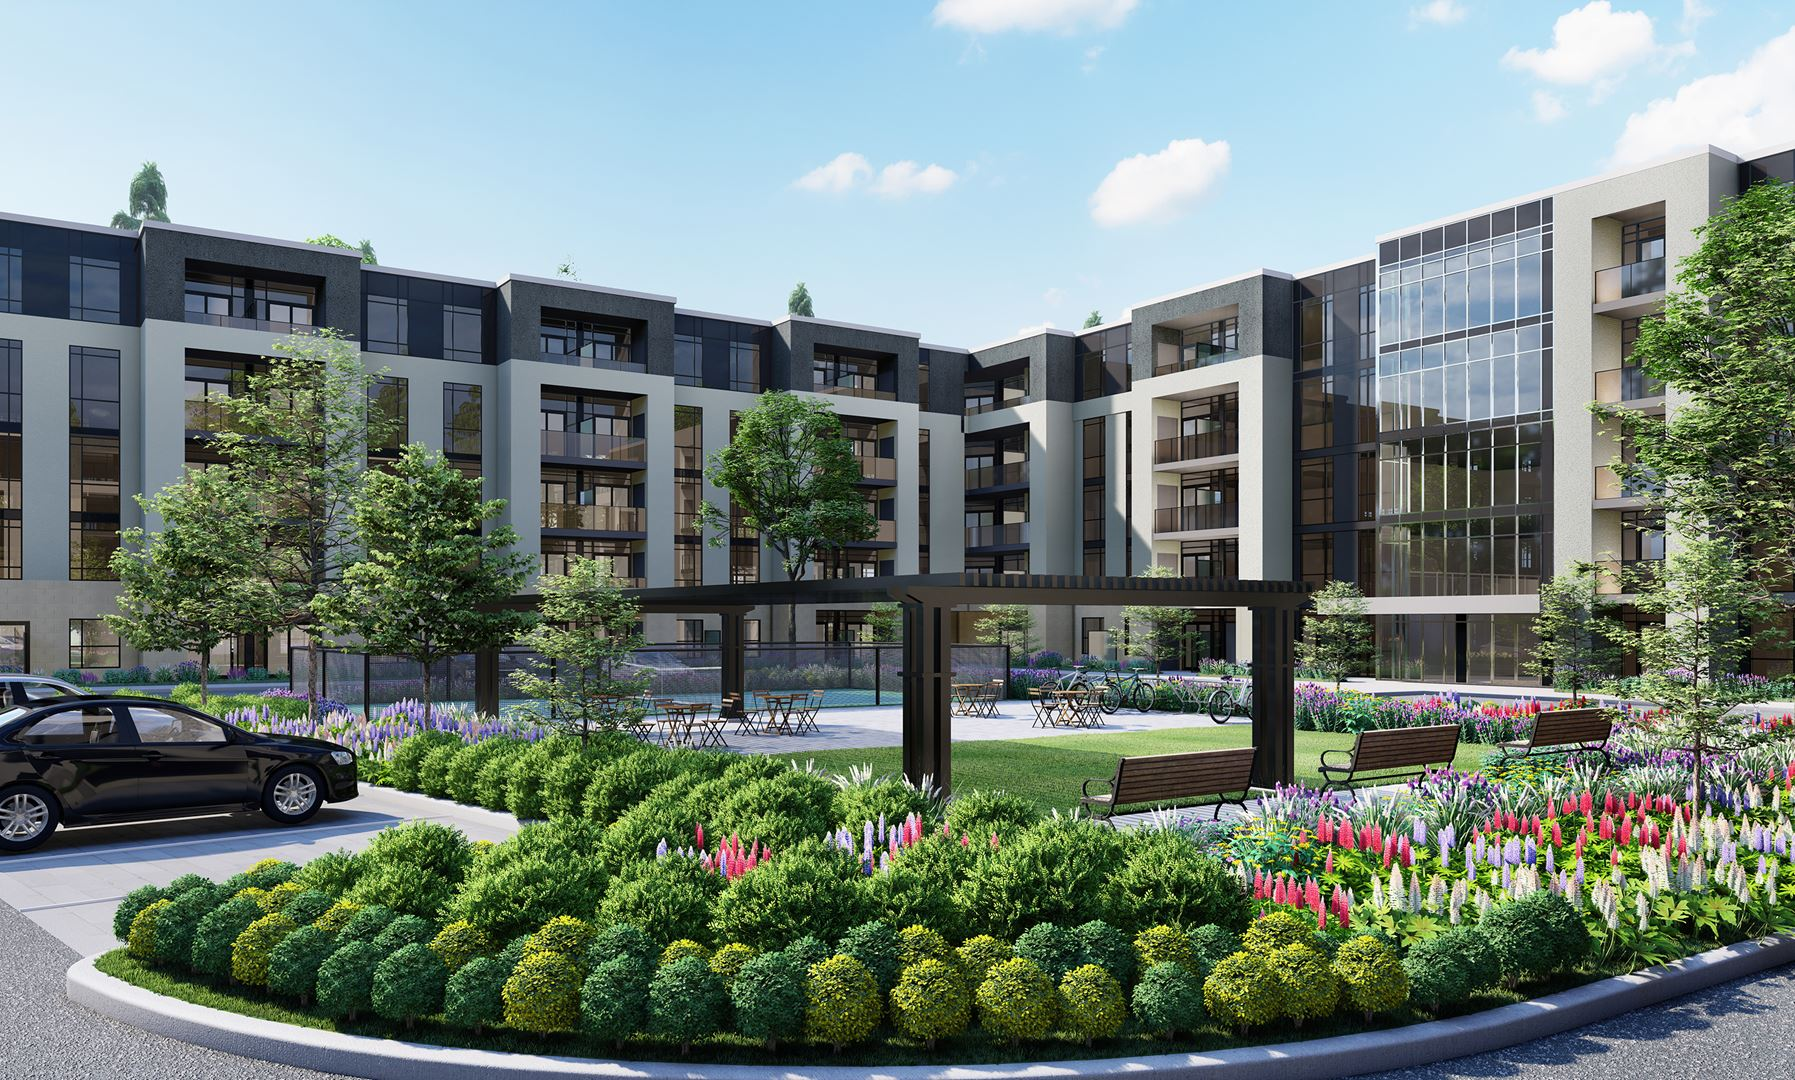 Rendering of Montebello Condos courtyard